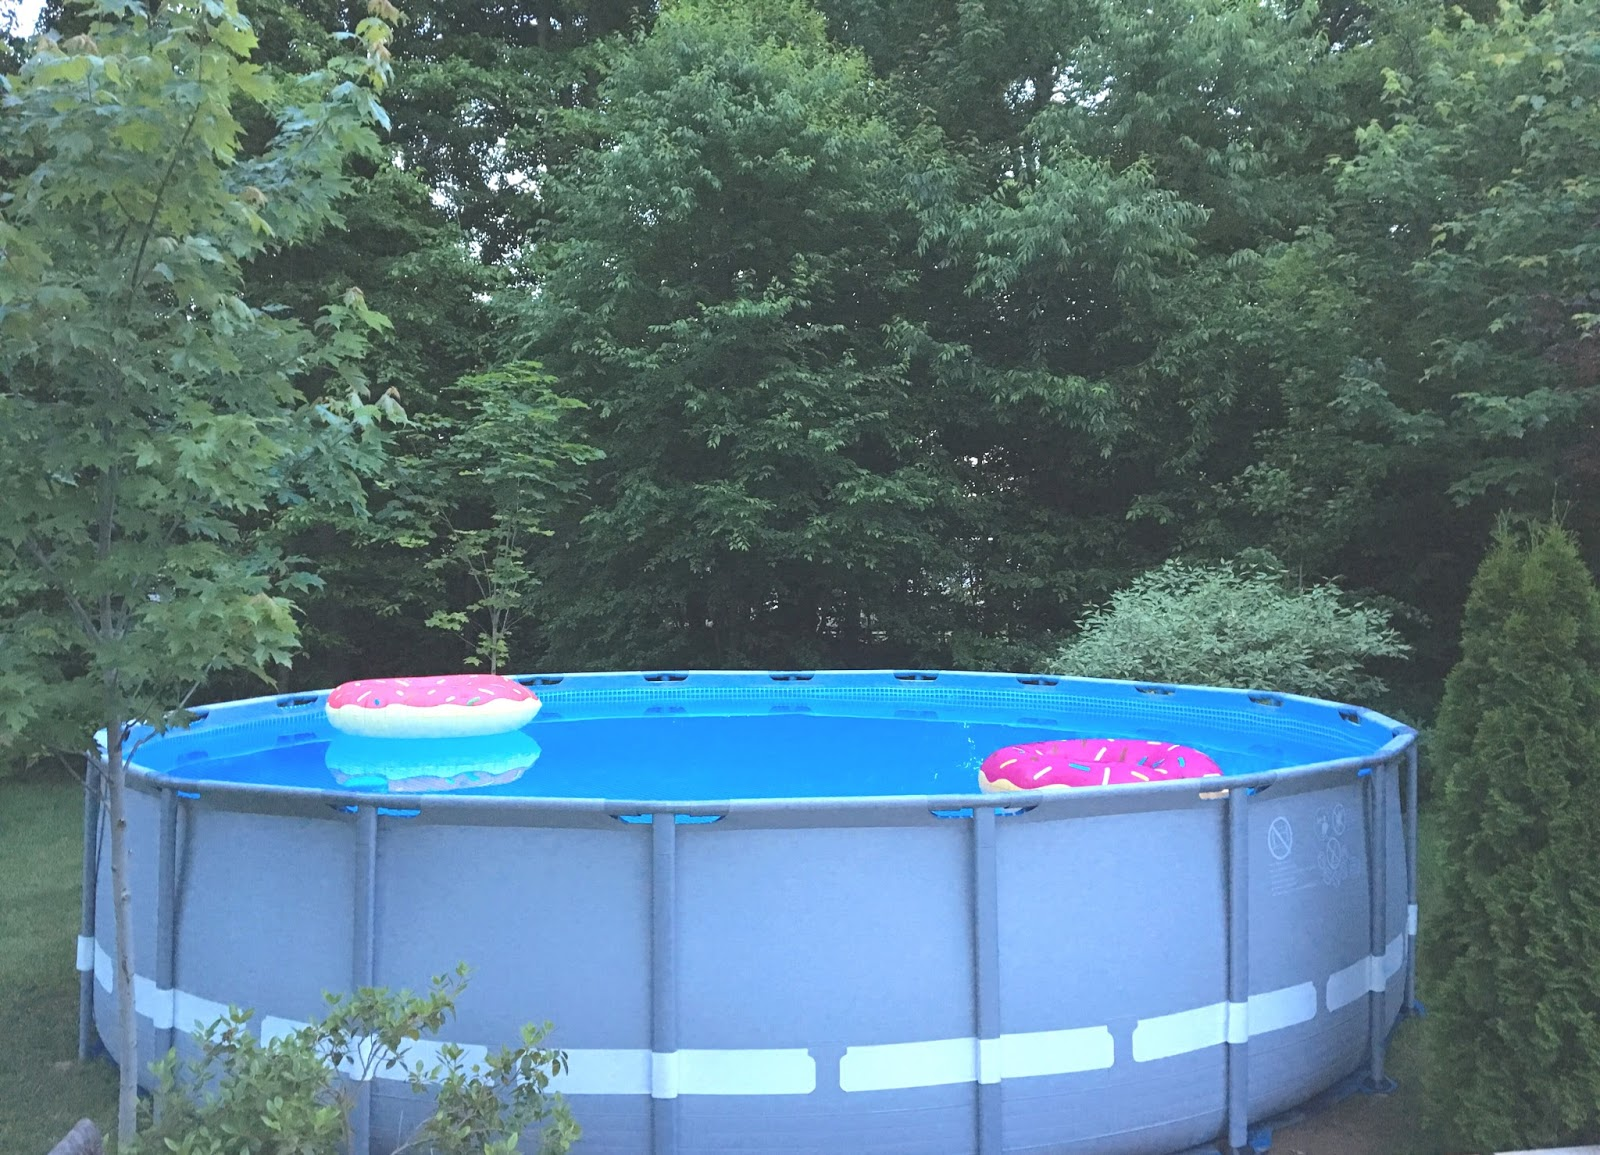 Our Intex Pool Landscaping - Leave a little sparkle wherever you go!